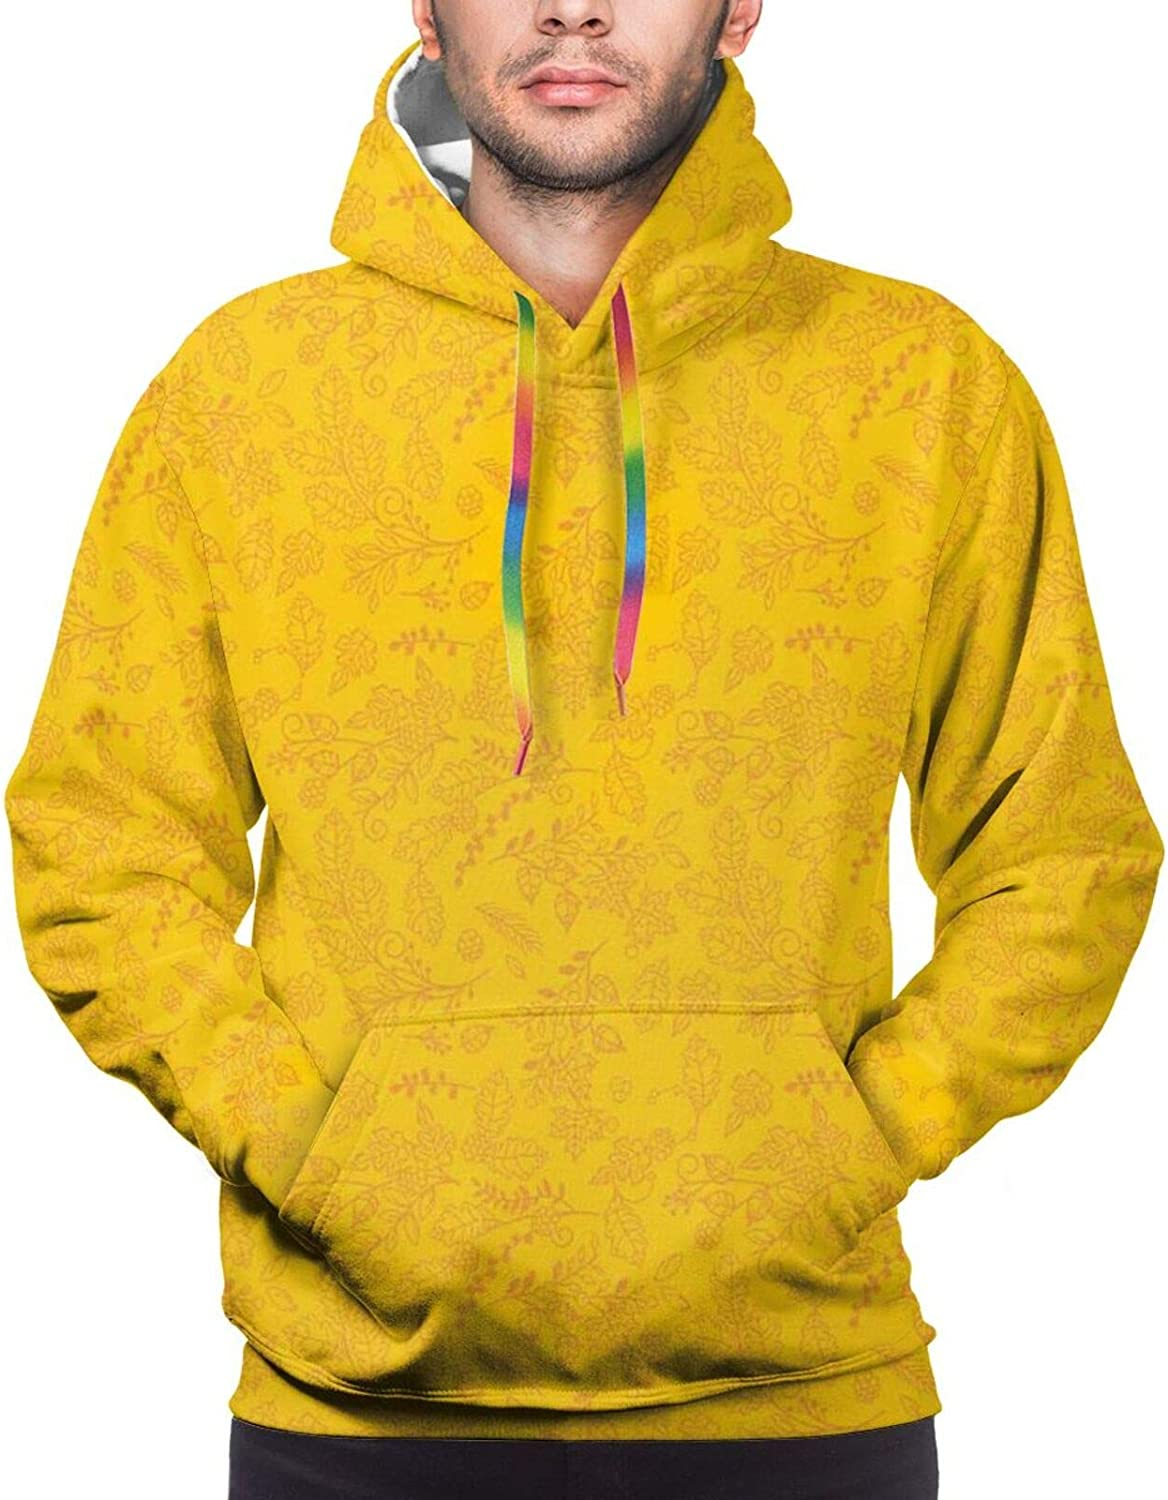 TENJONE Men's Hoodies Sweatshirts,Autumn Branches Border Design with Ashberries and Dried Leaves Graphic